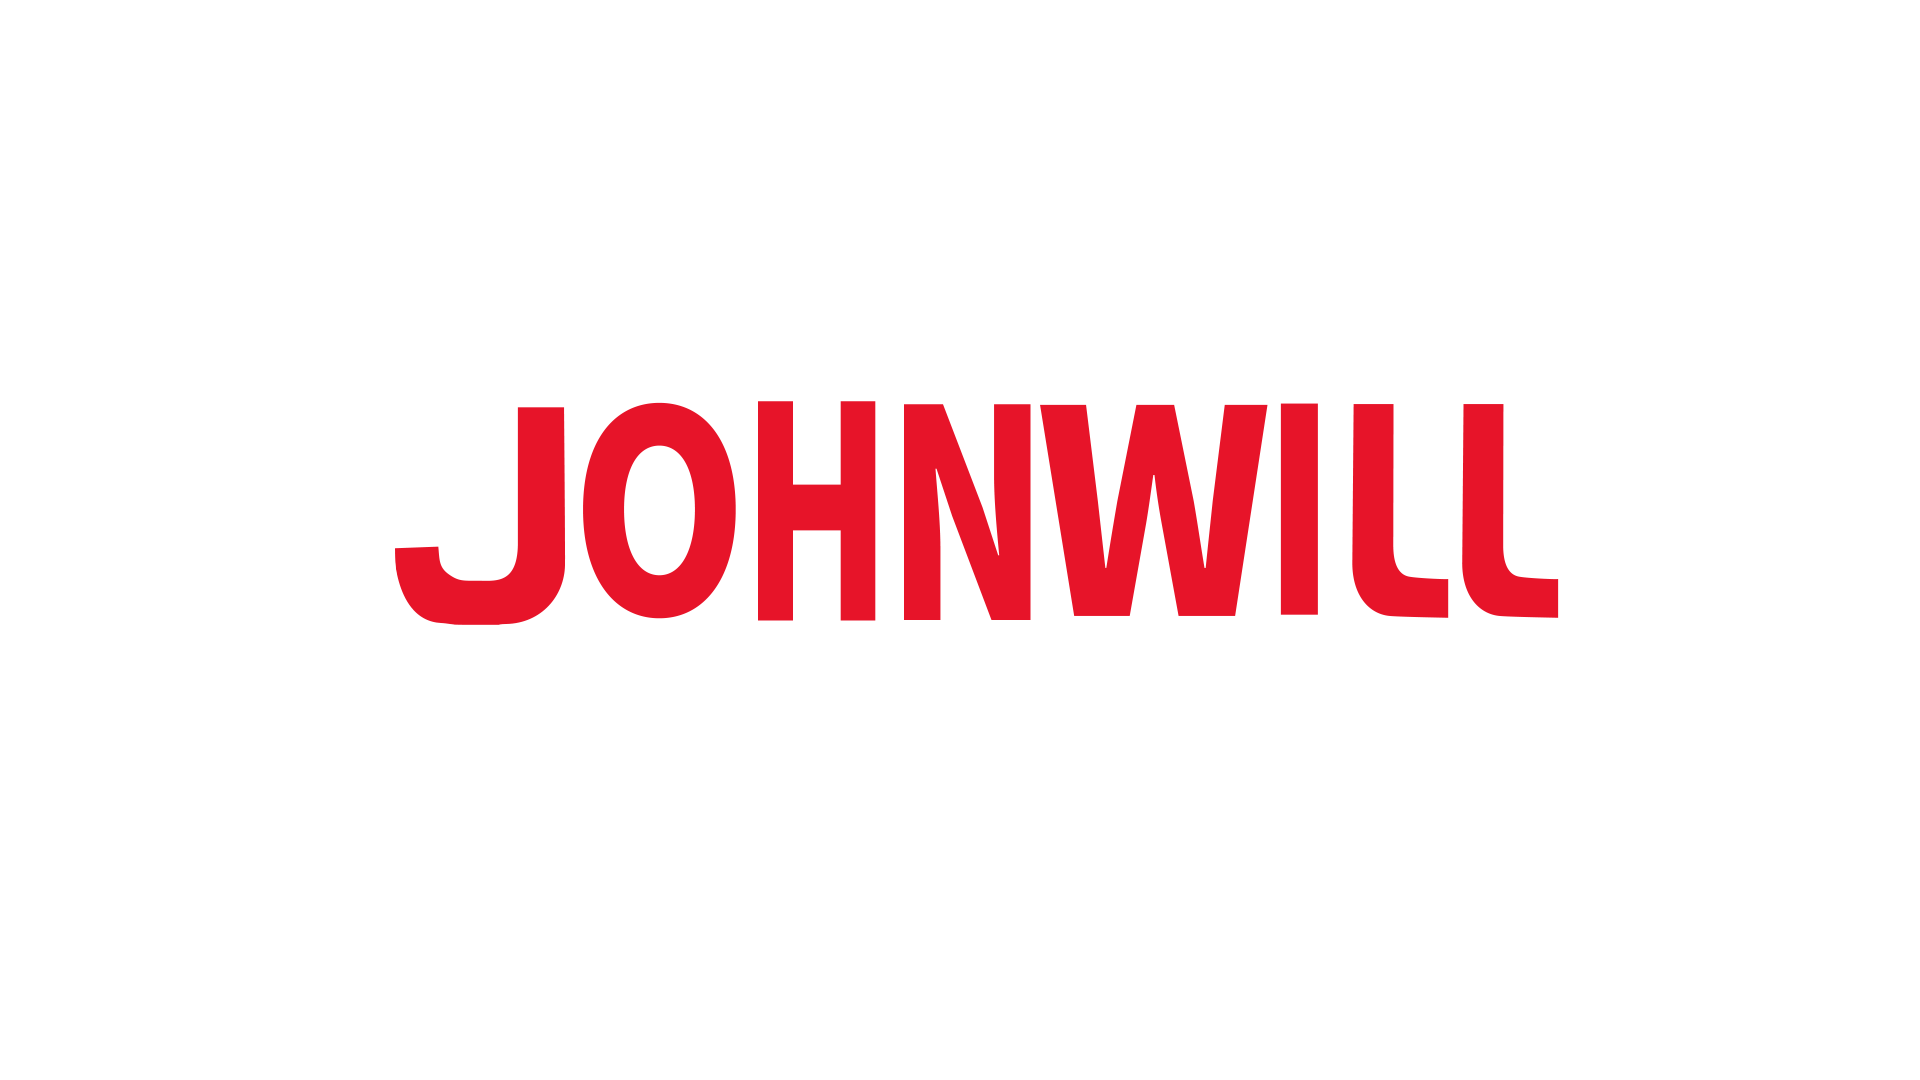 JOHNWILL